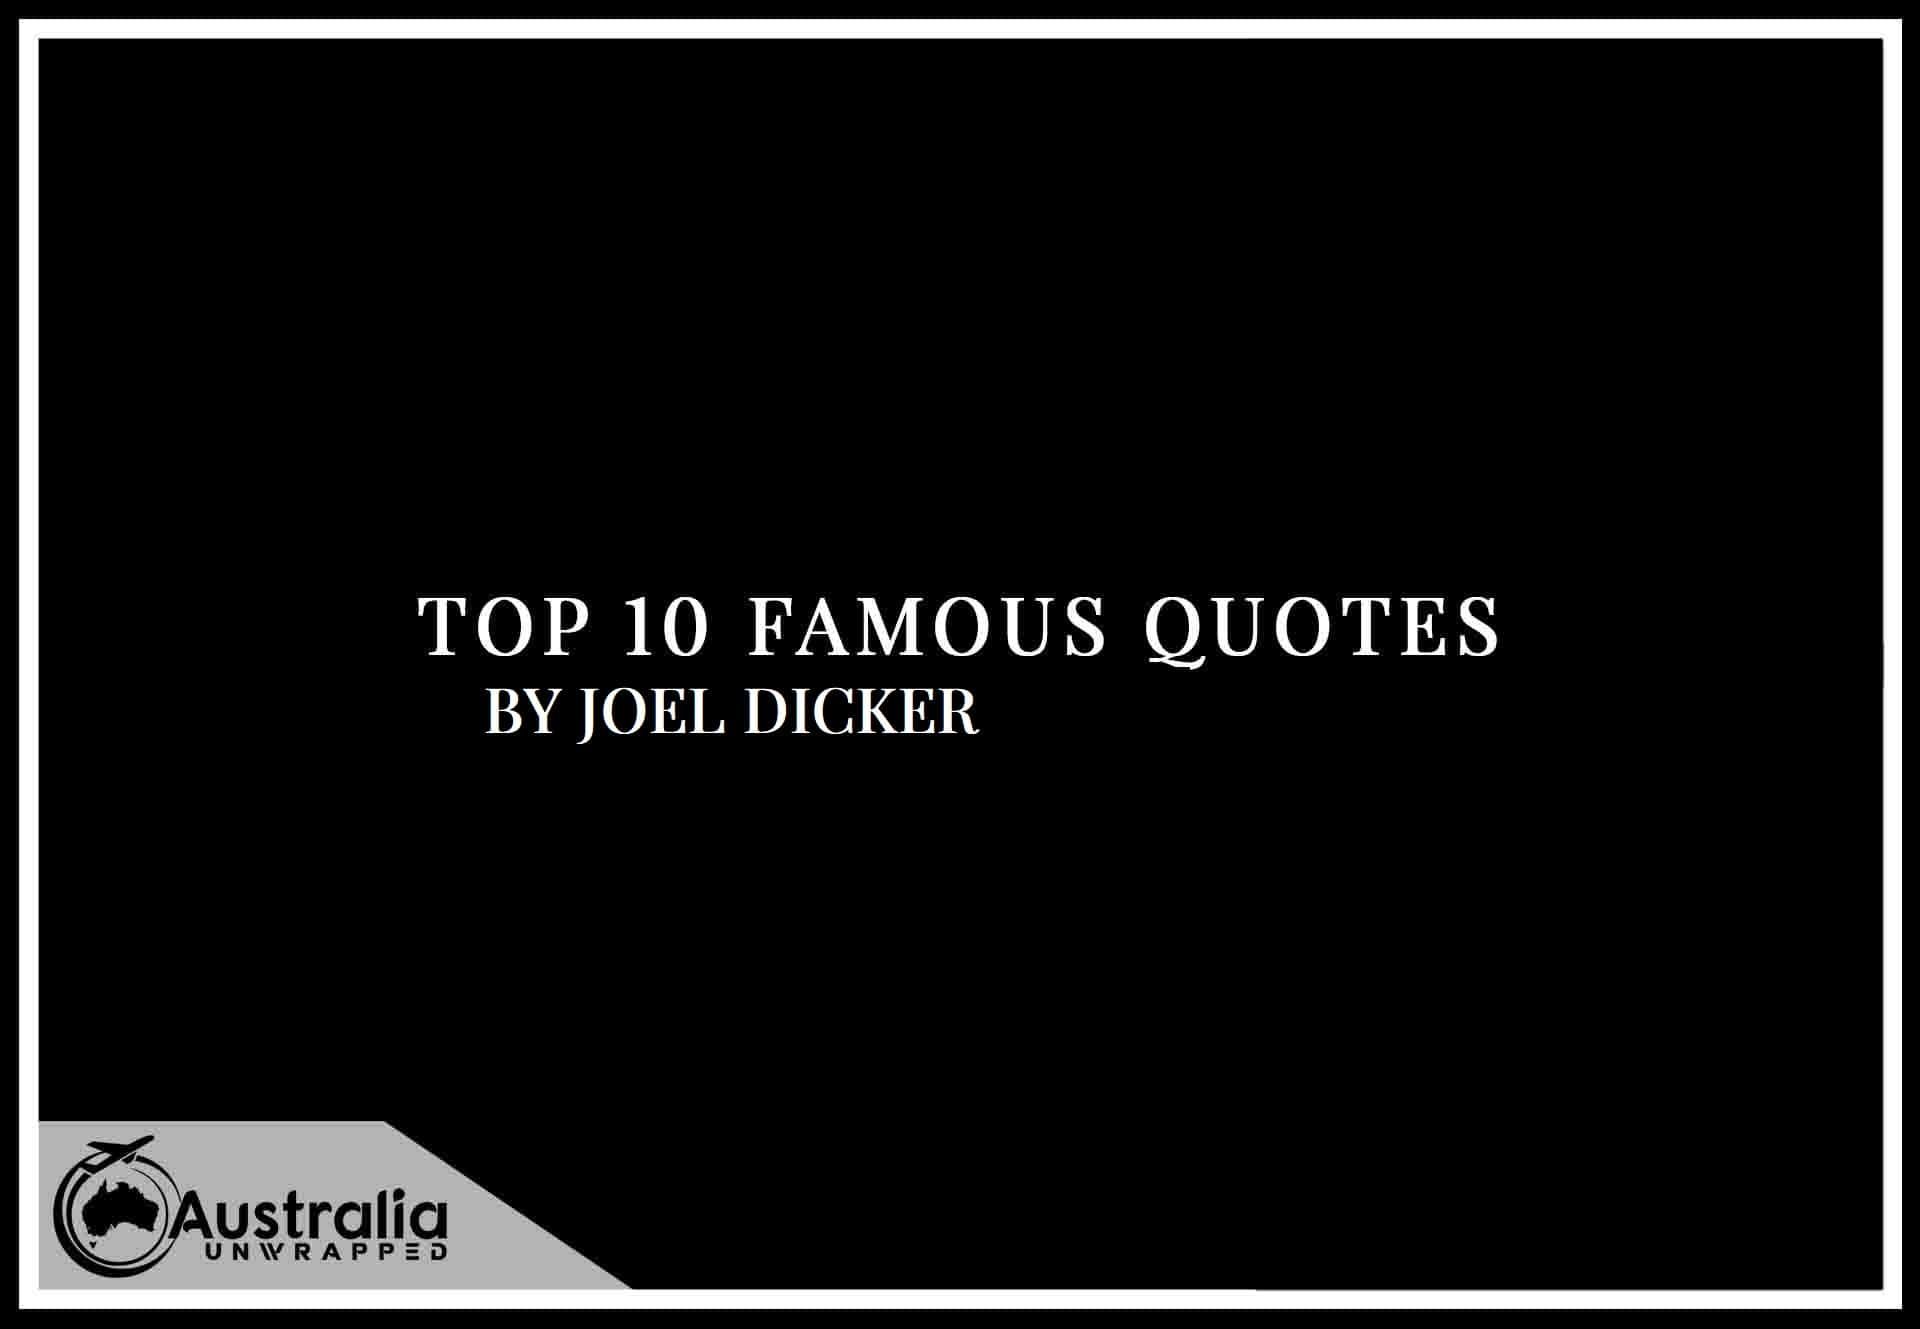 Top 10 Famous Quotes by Author Joël Dicker